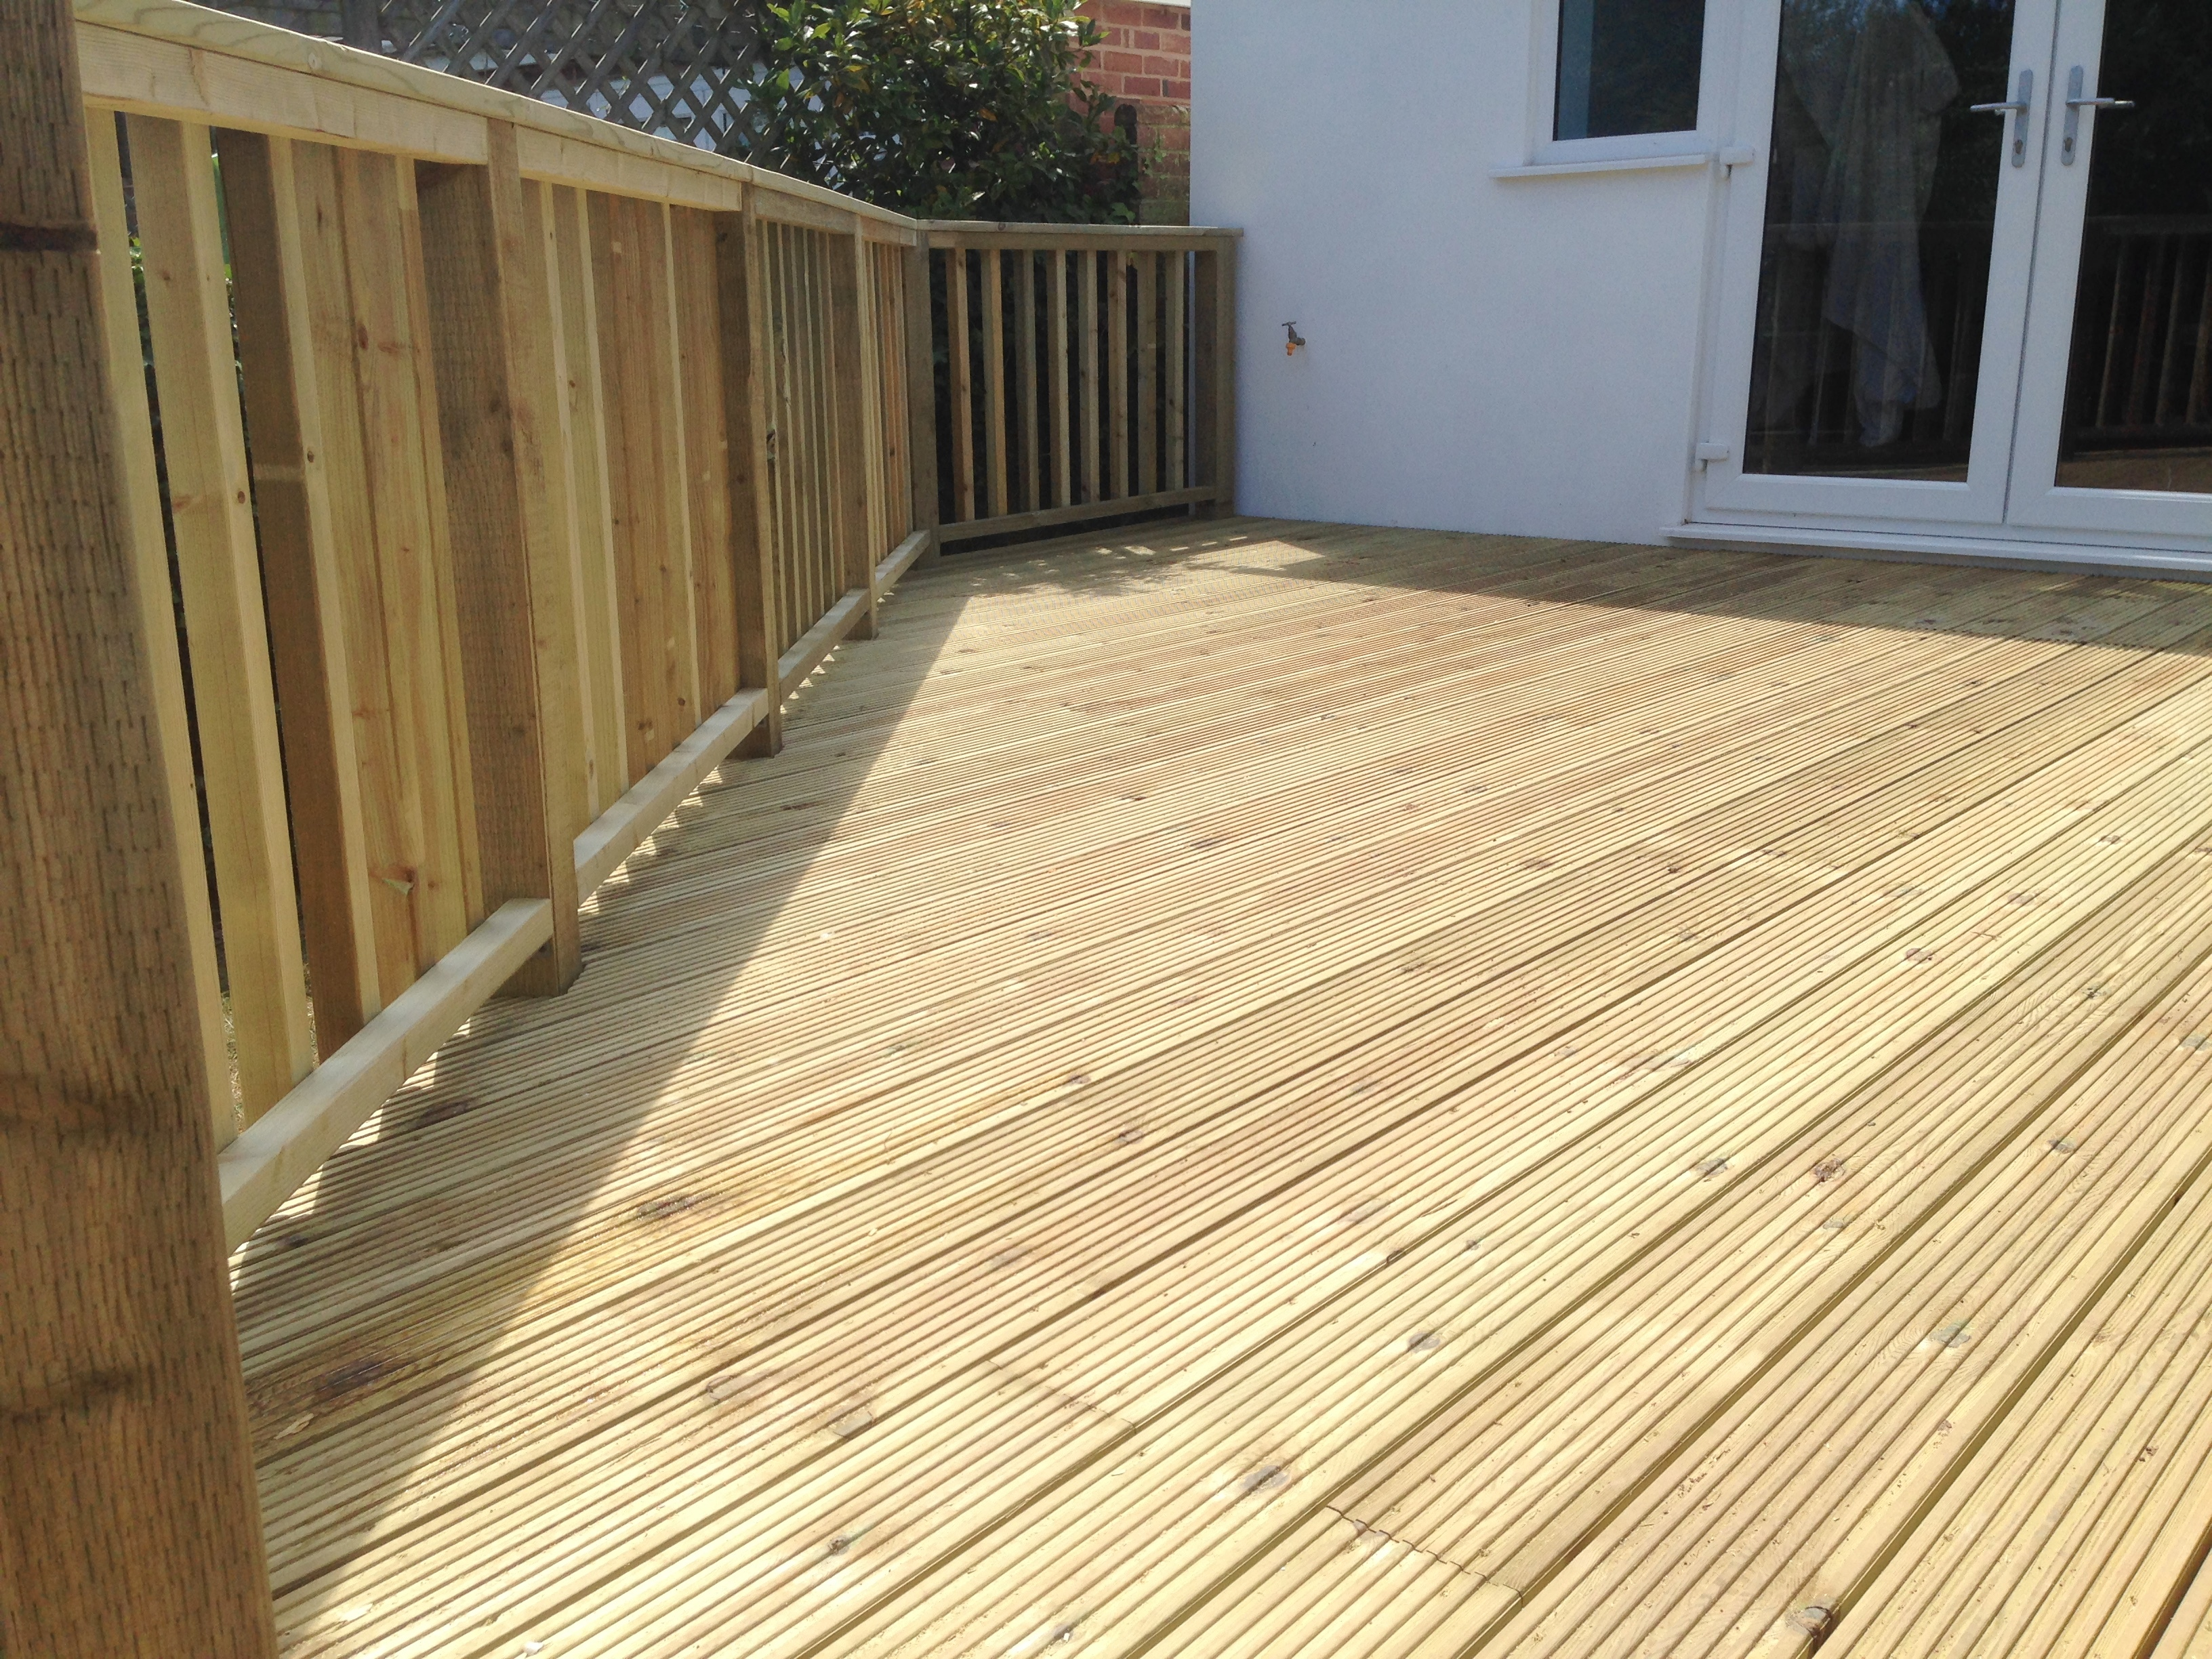 Raised Decking/American Balustrade